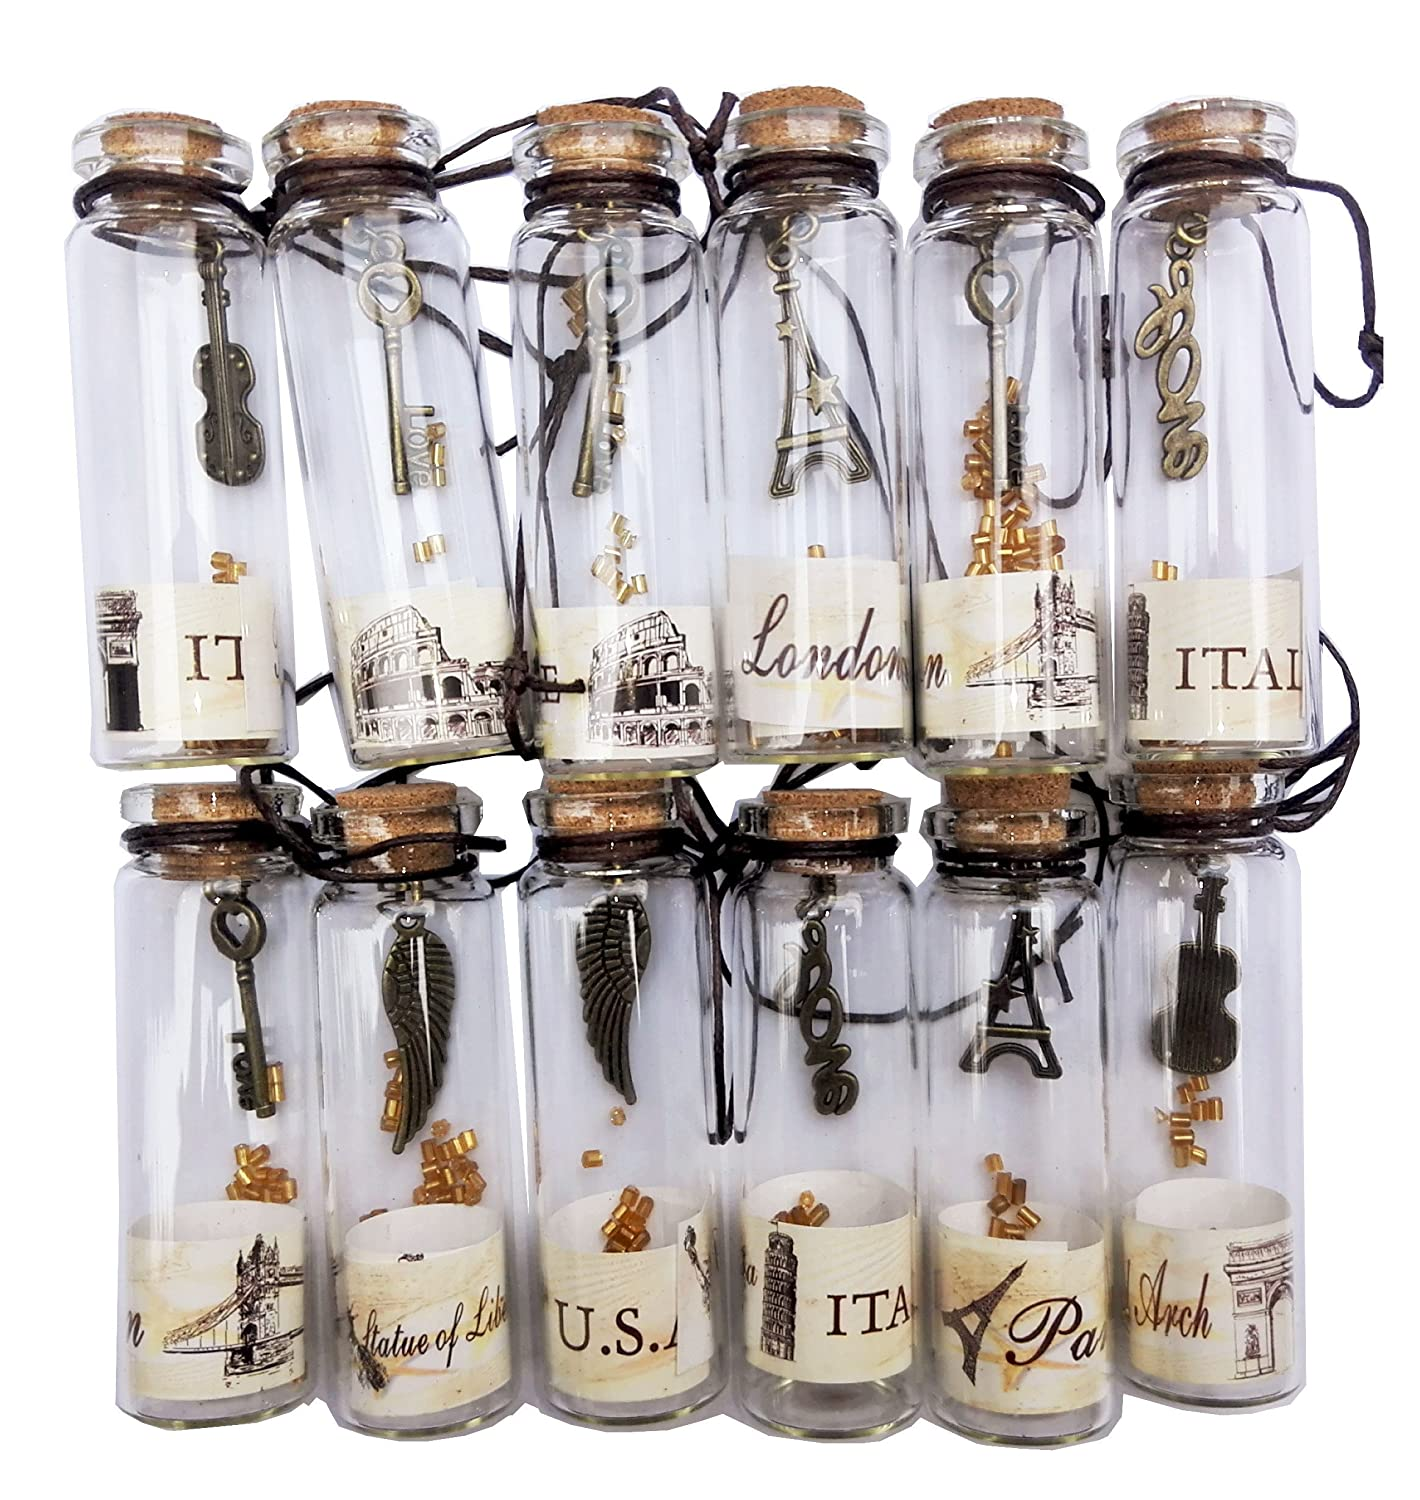 Nesting Nomad Small Transparent Mini Glass Jars with Cork Stopper and with Inside Steam Punk Pendants p-12